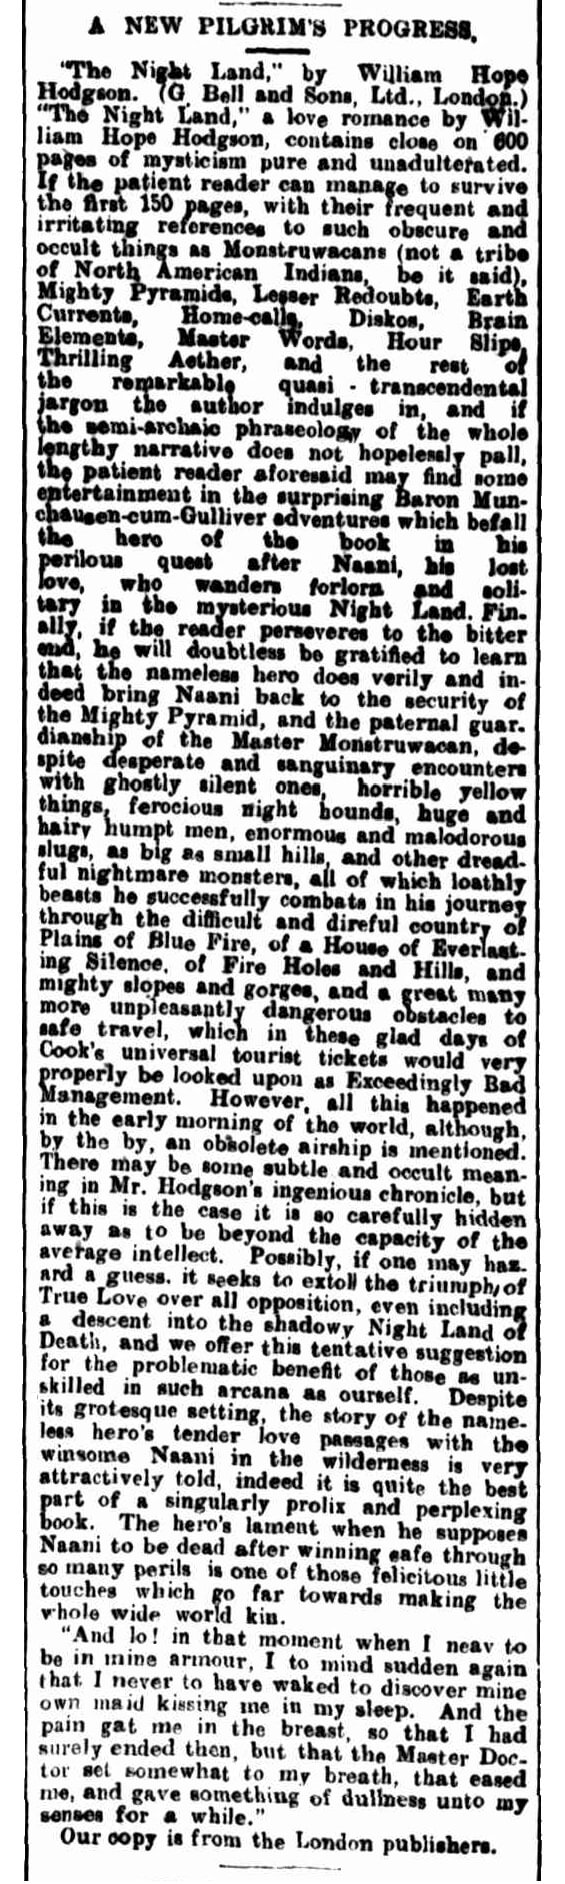 Review of The Night Land by William Hope Hodgson from the Western Mail (Perth), June 1, 1912